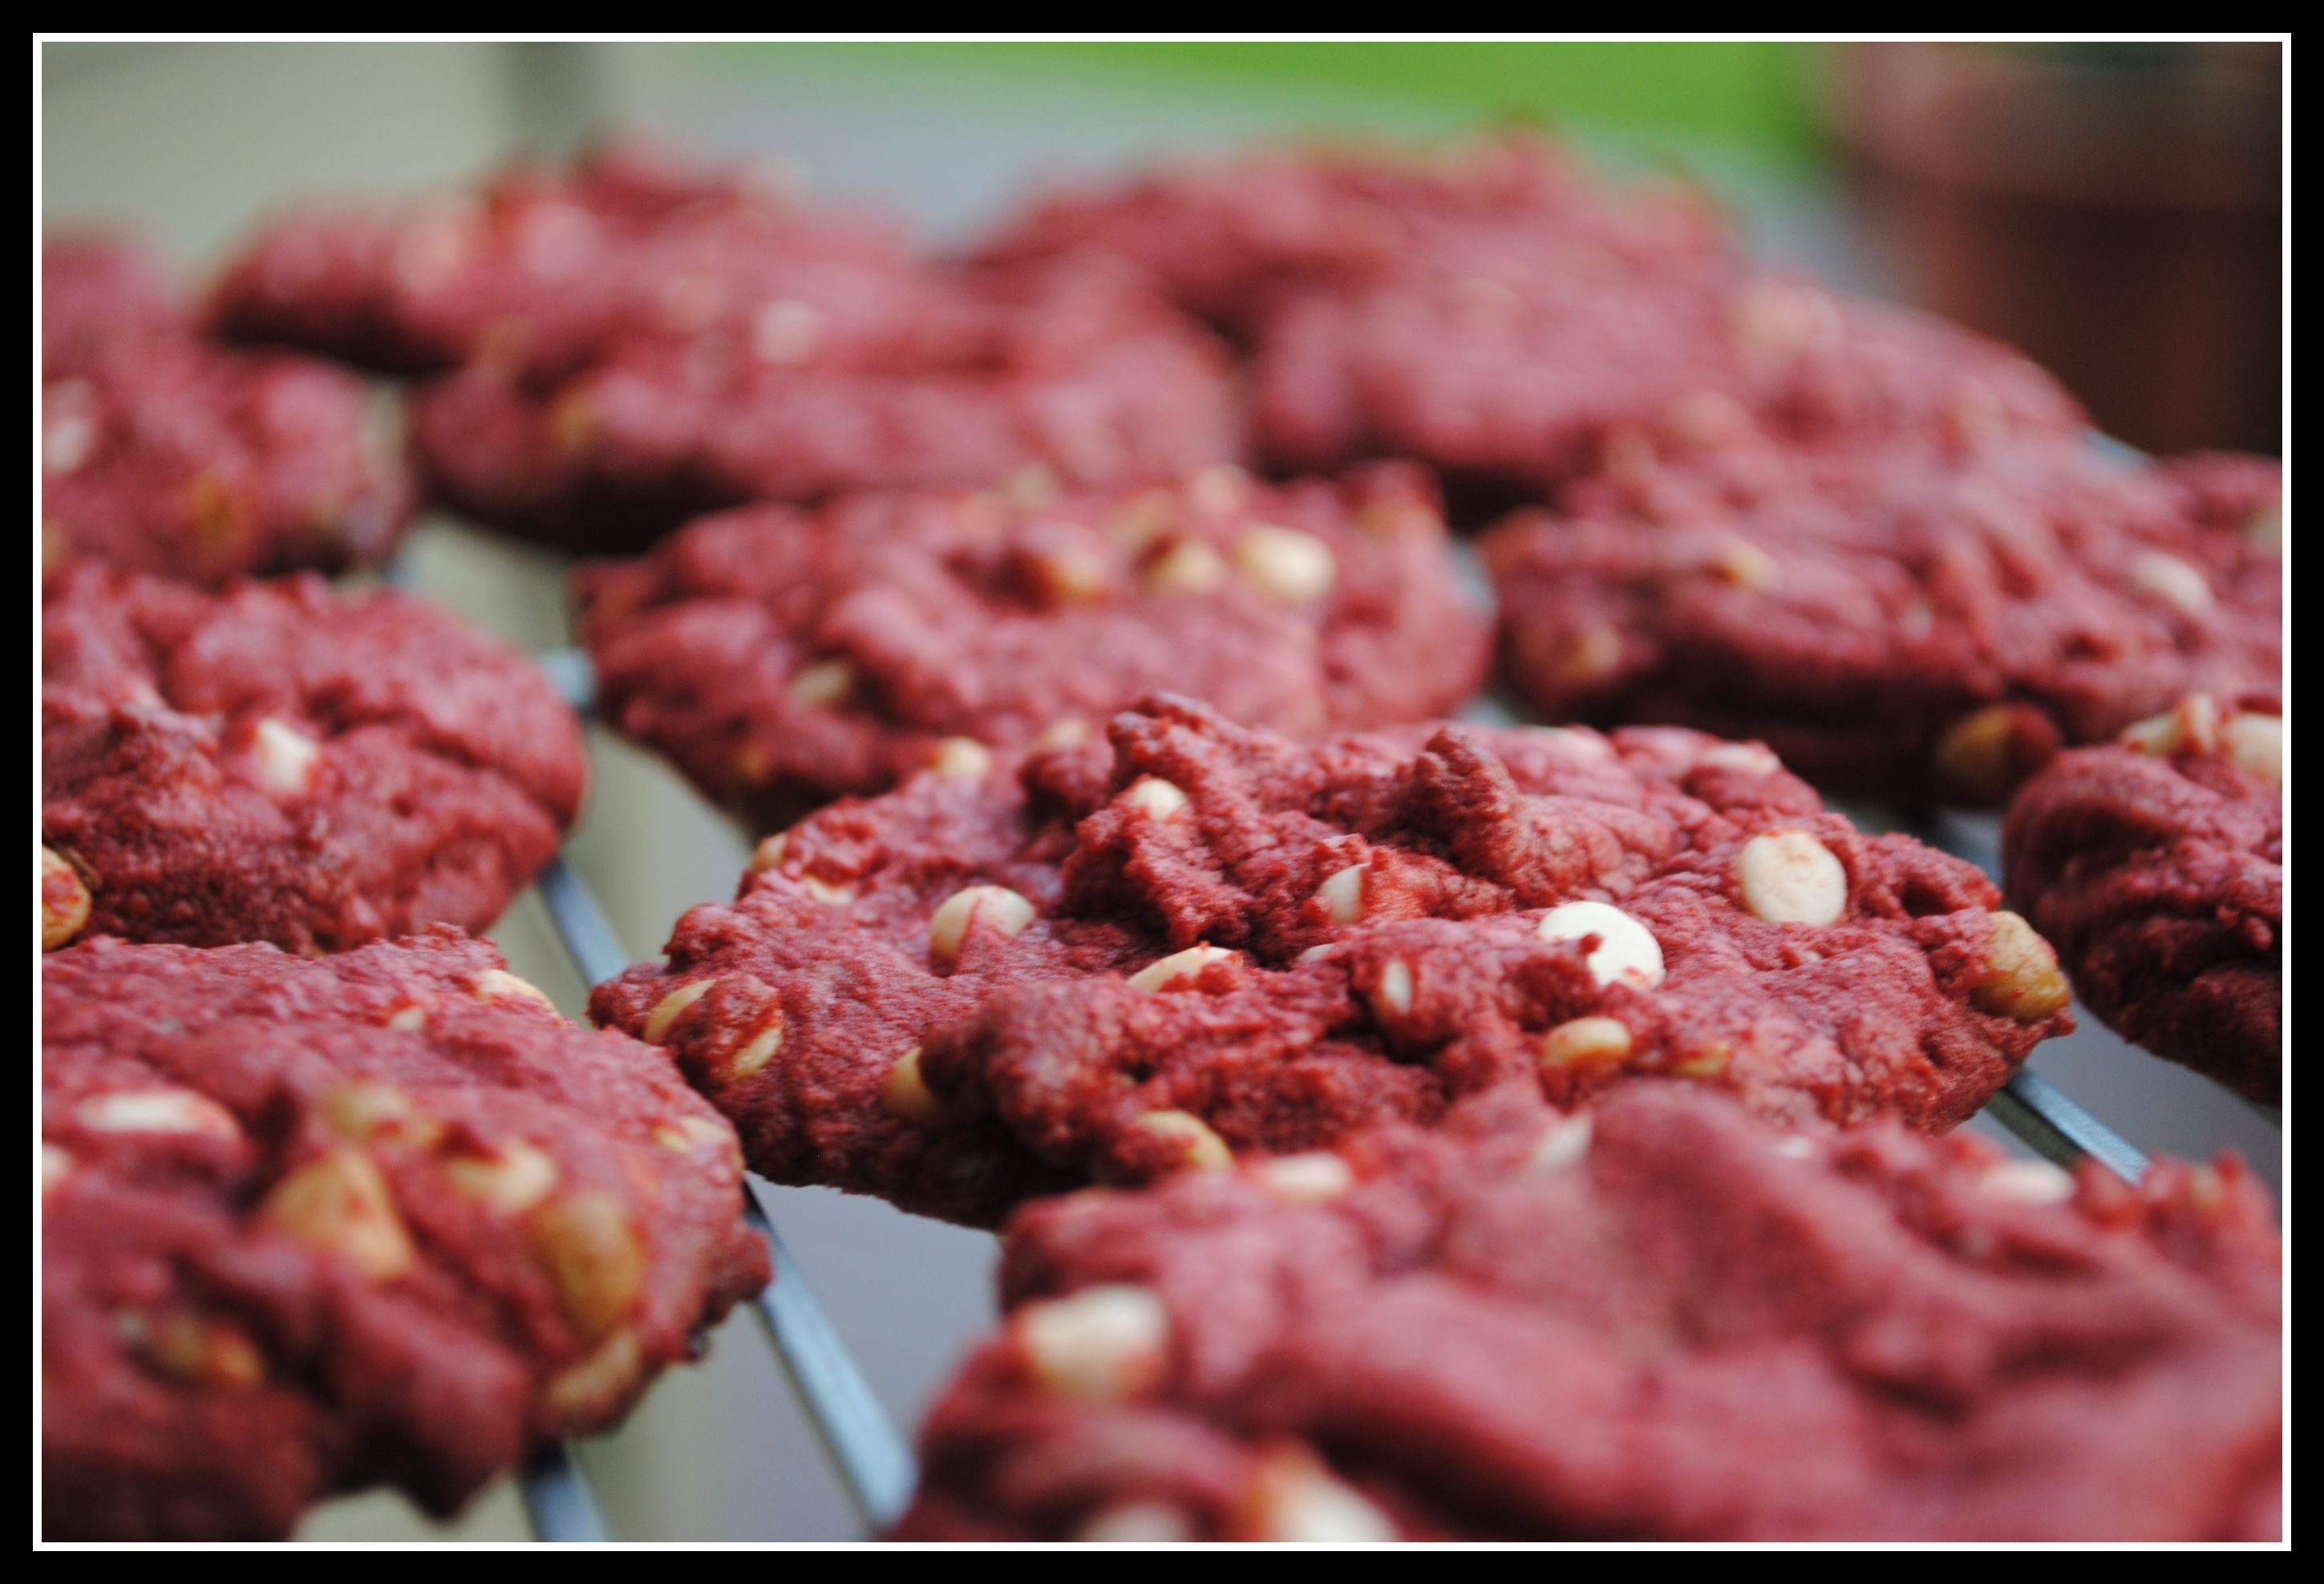 Red Velvet Cookies with White Chocolate Chips... Finally can use that box of red velvet mix!